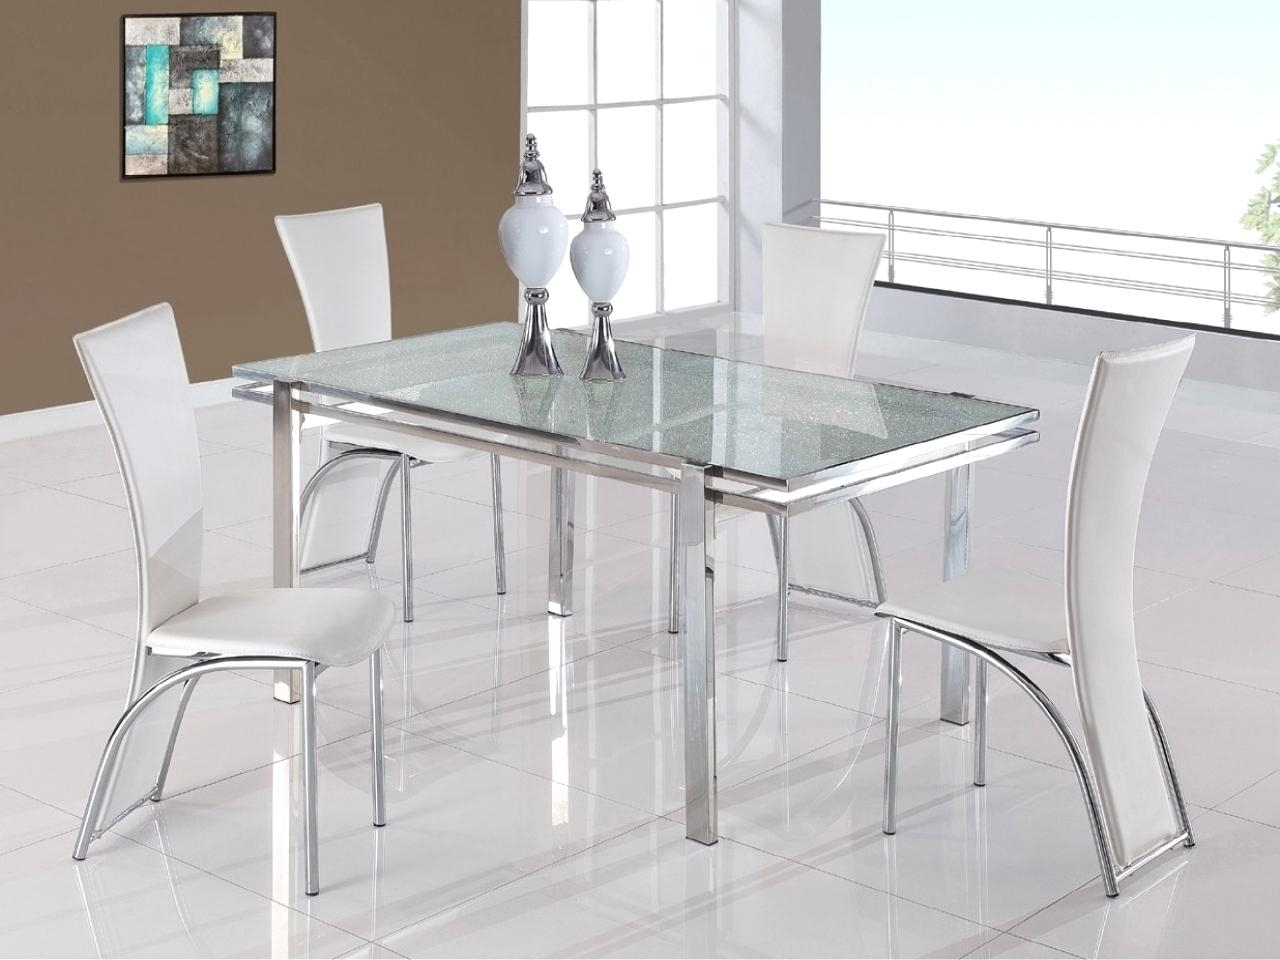 Most Recent White Glass Dining Tables And Chairs Regarding Outstanding Dining Room Sets White Glass Lass Dining Table Set Price (View 10 of 25)